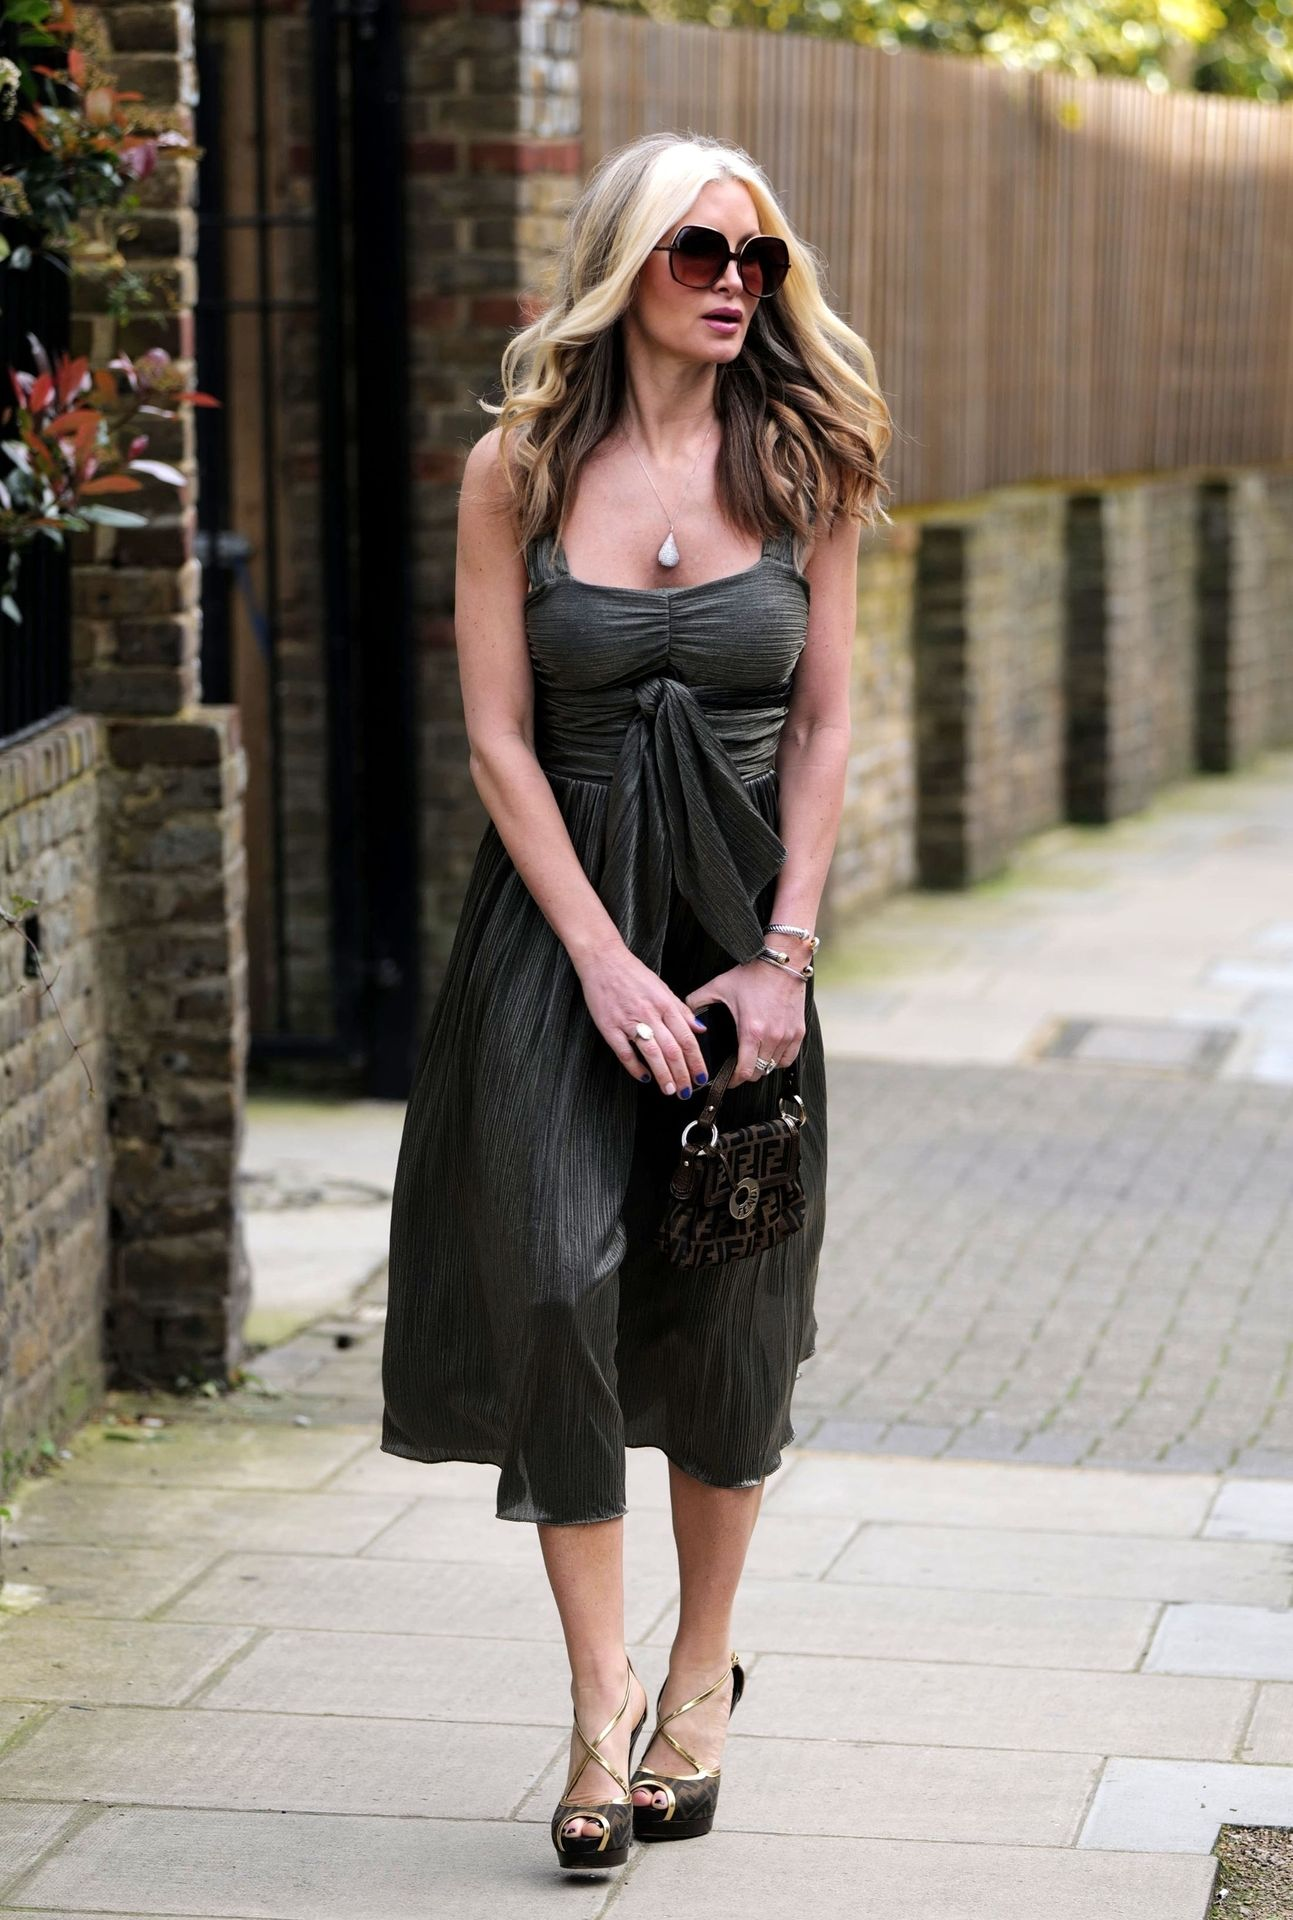 Caprice Bourret Steps Out Looking Glamorous In London 0029